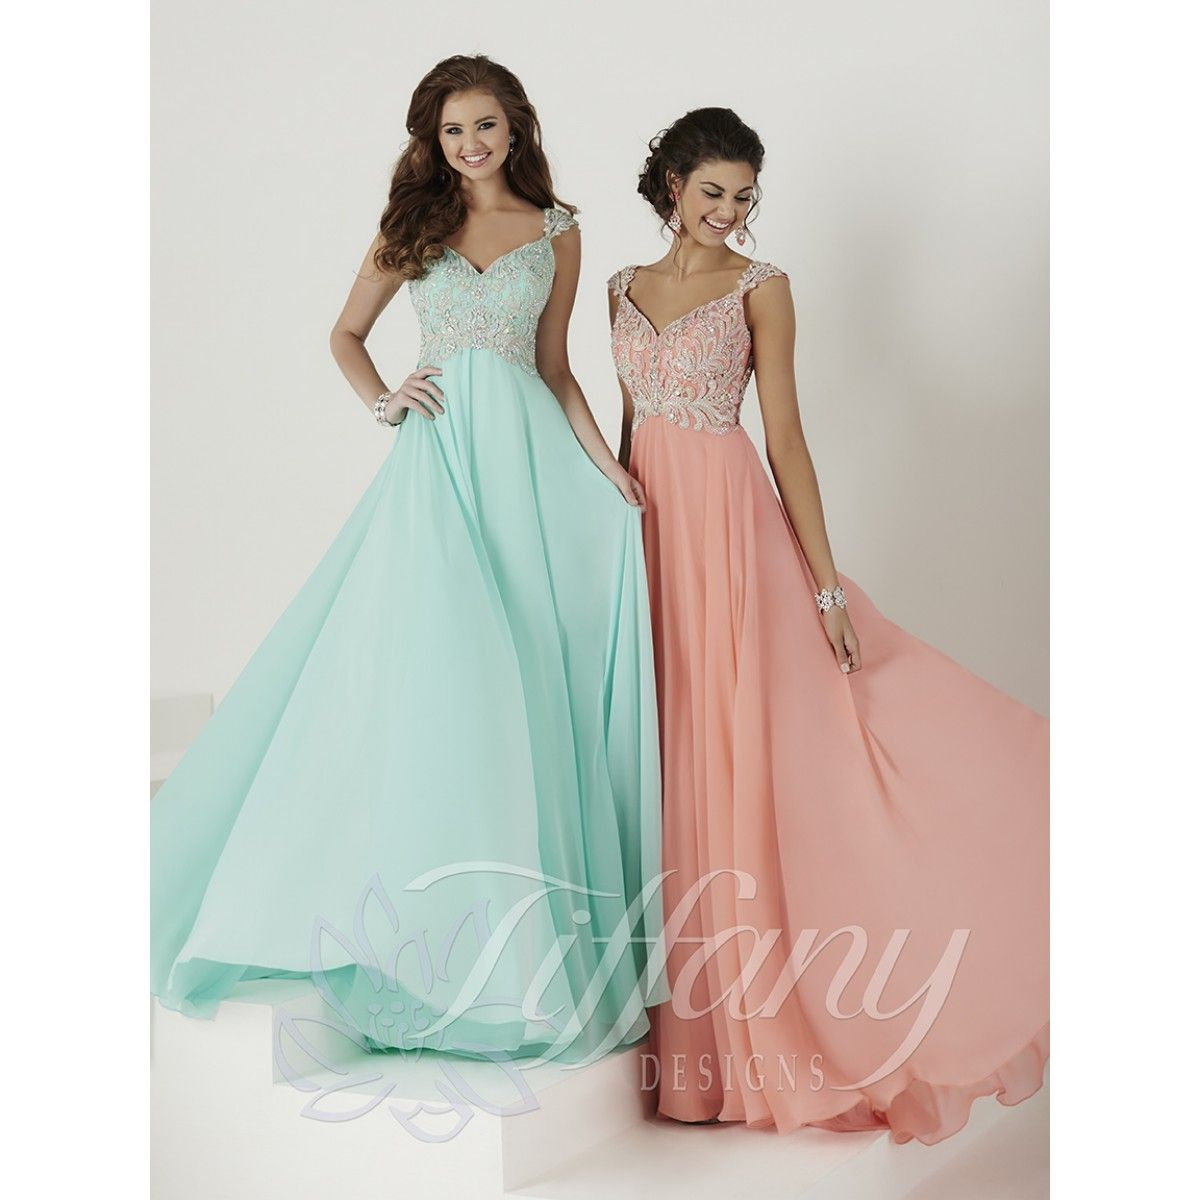 Tiffany Designs 16136 beautiful embroidered bodice prom or ...